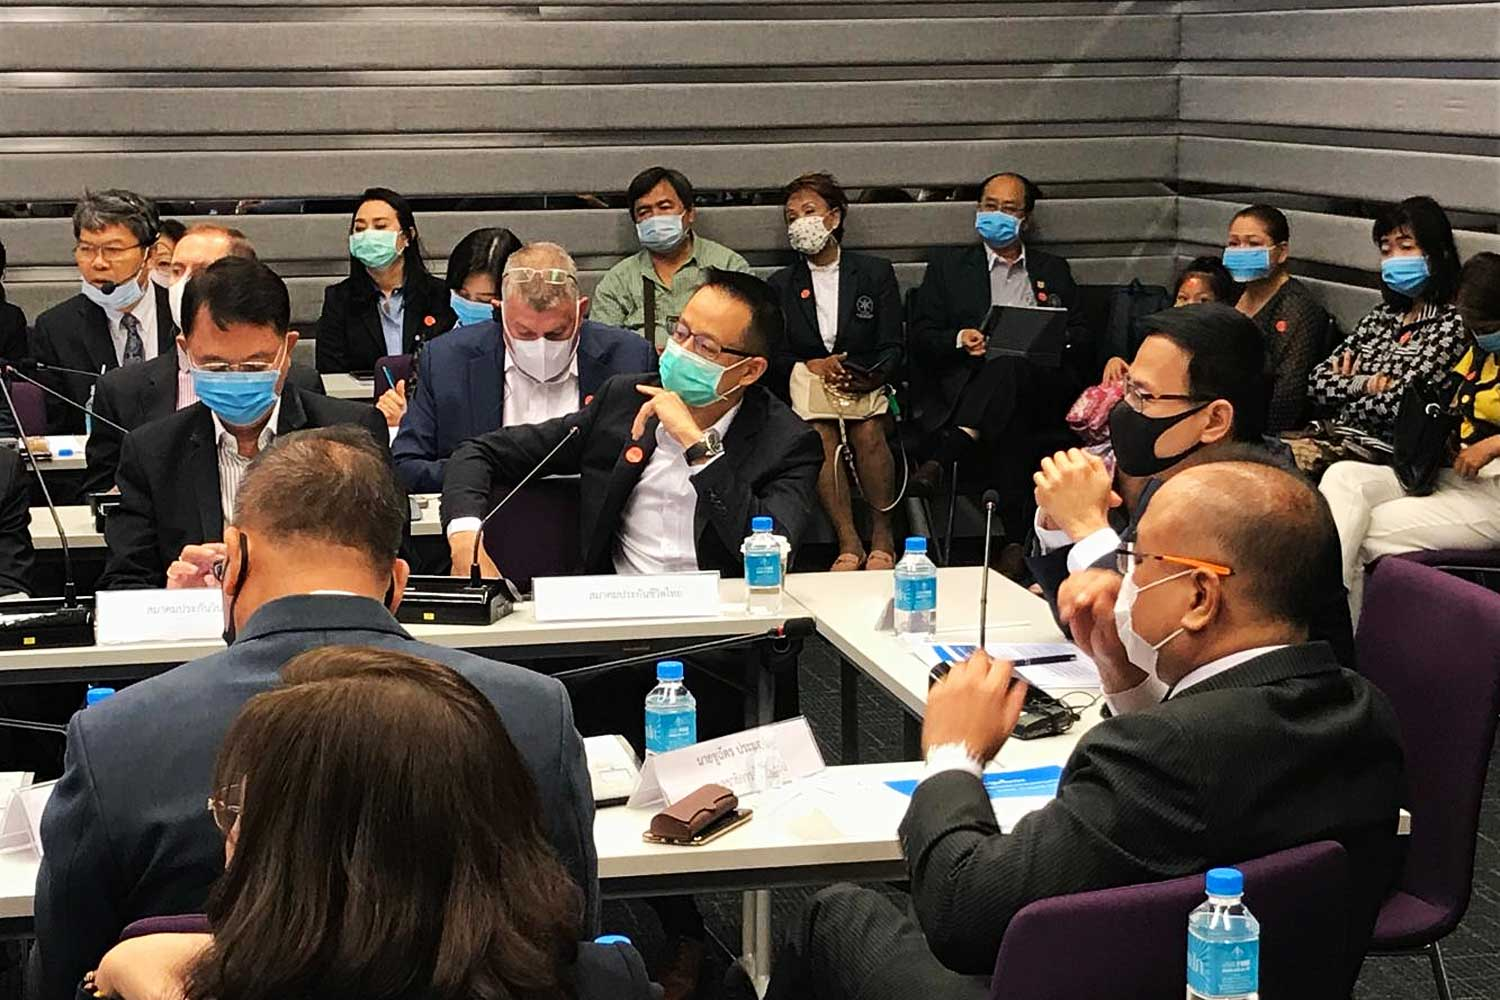 A meeting at the Office of the Insurance Commission sees all participants wearing masks as a precaution as many insurers offer Covid-19 products.